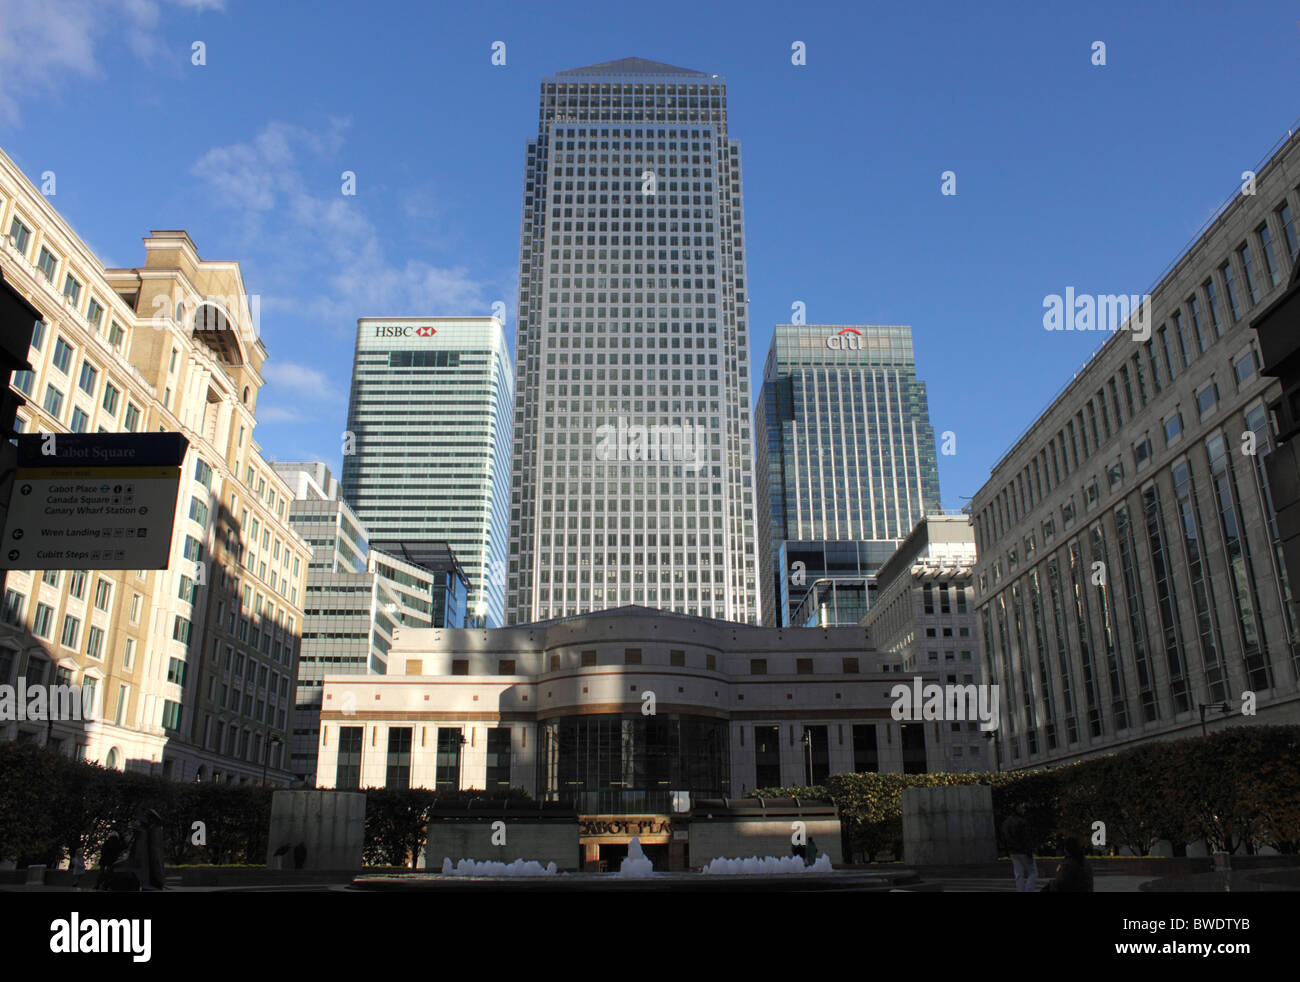 Cabot Place at Canary Wharf Docklands London Stock Photo